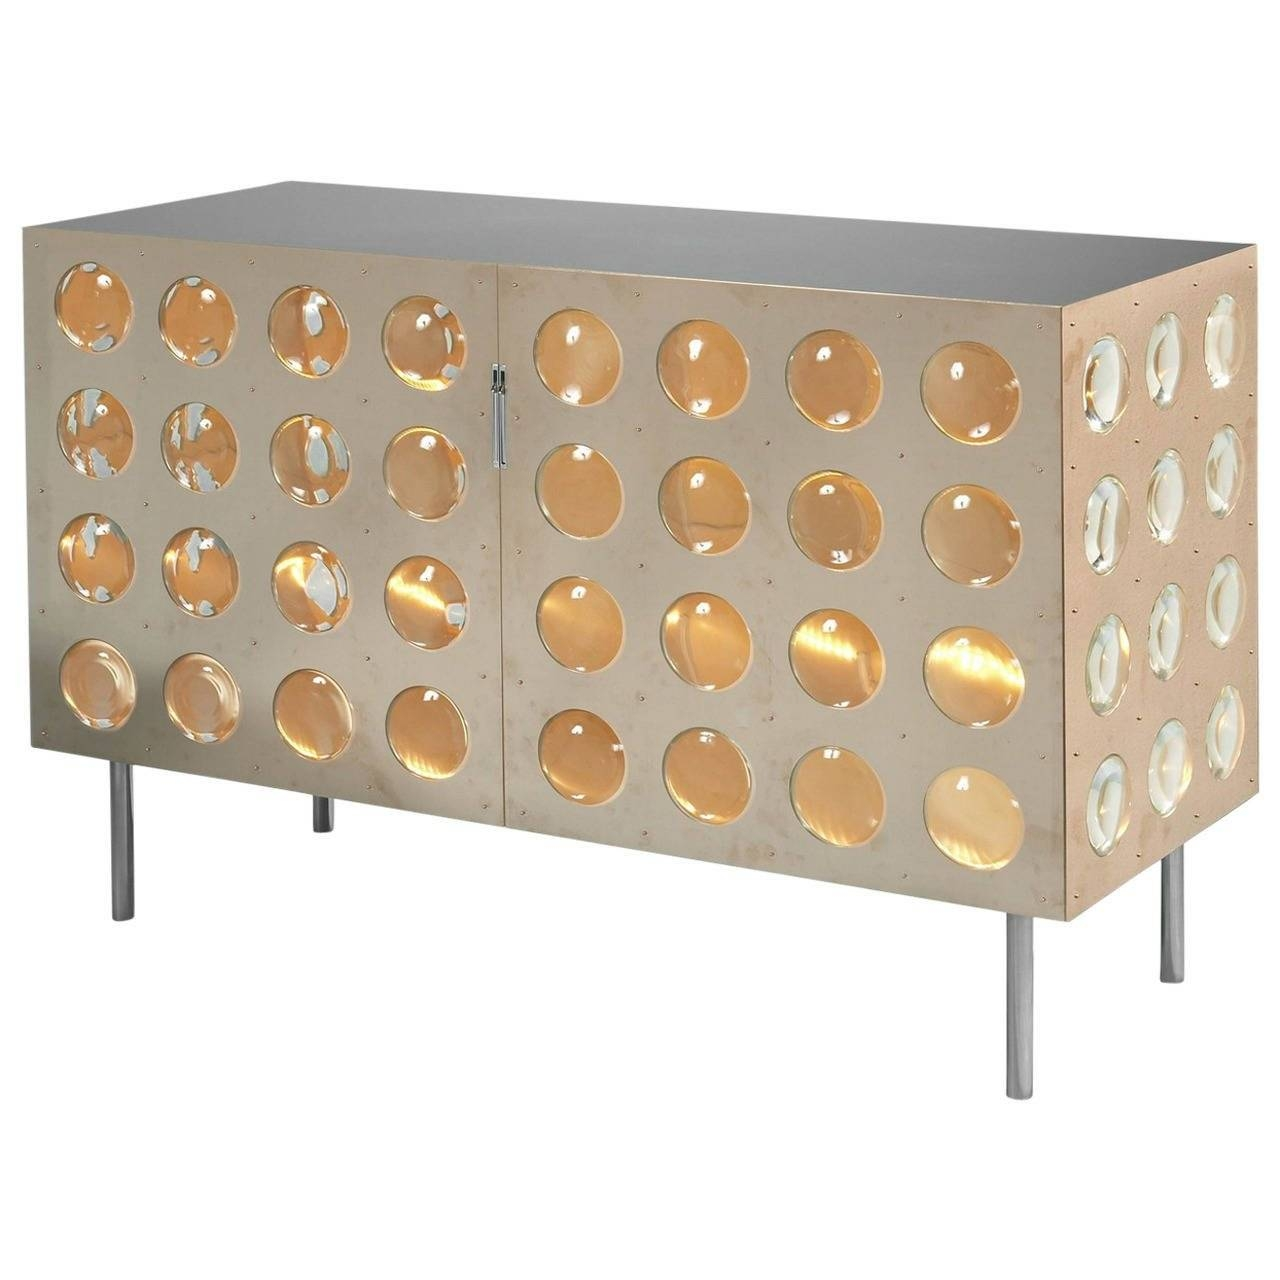 Spinoza Sideboardpatrick Naggar For Sale At 1Stdibs Pertaining To Sideboard For Sale (#20 of 20)